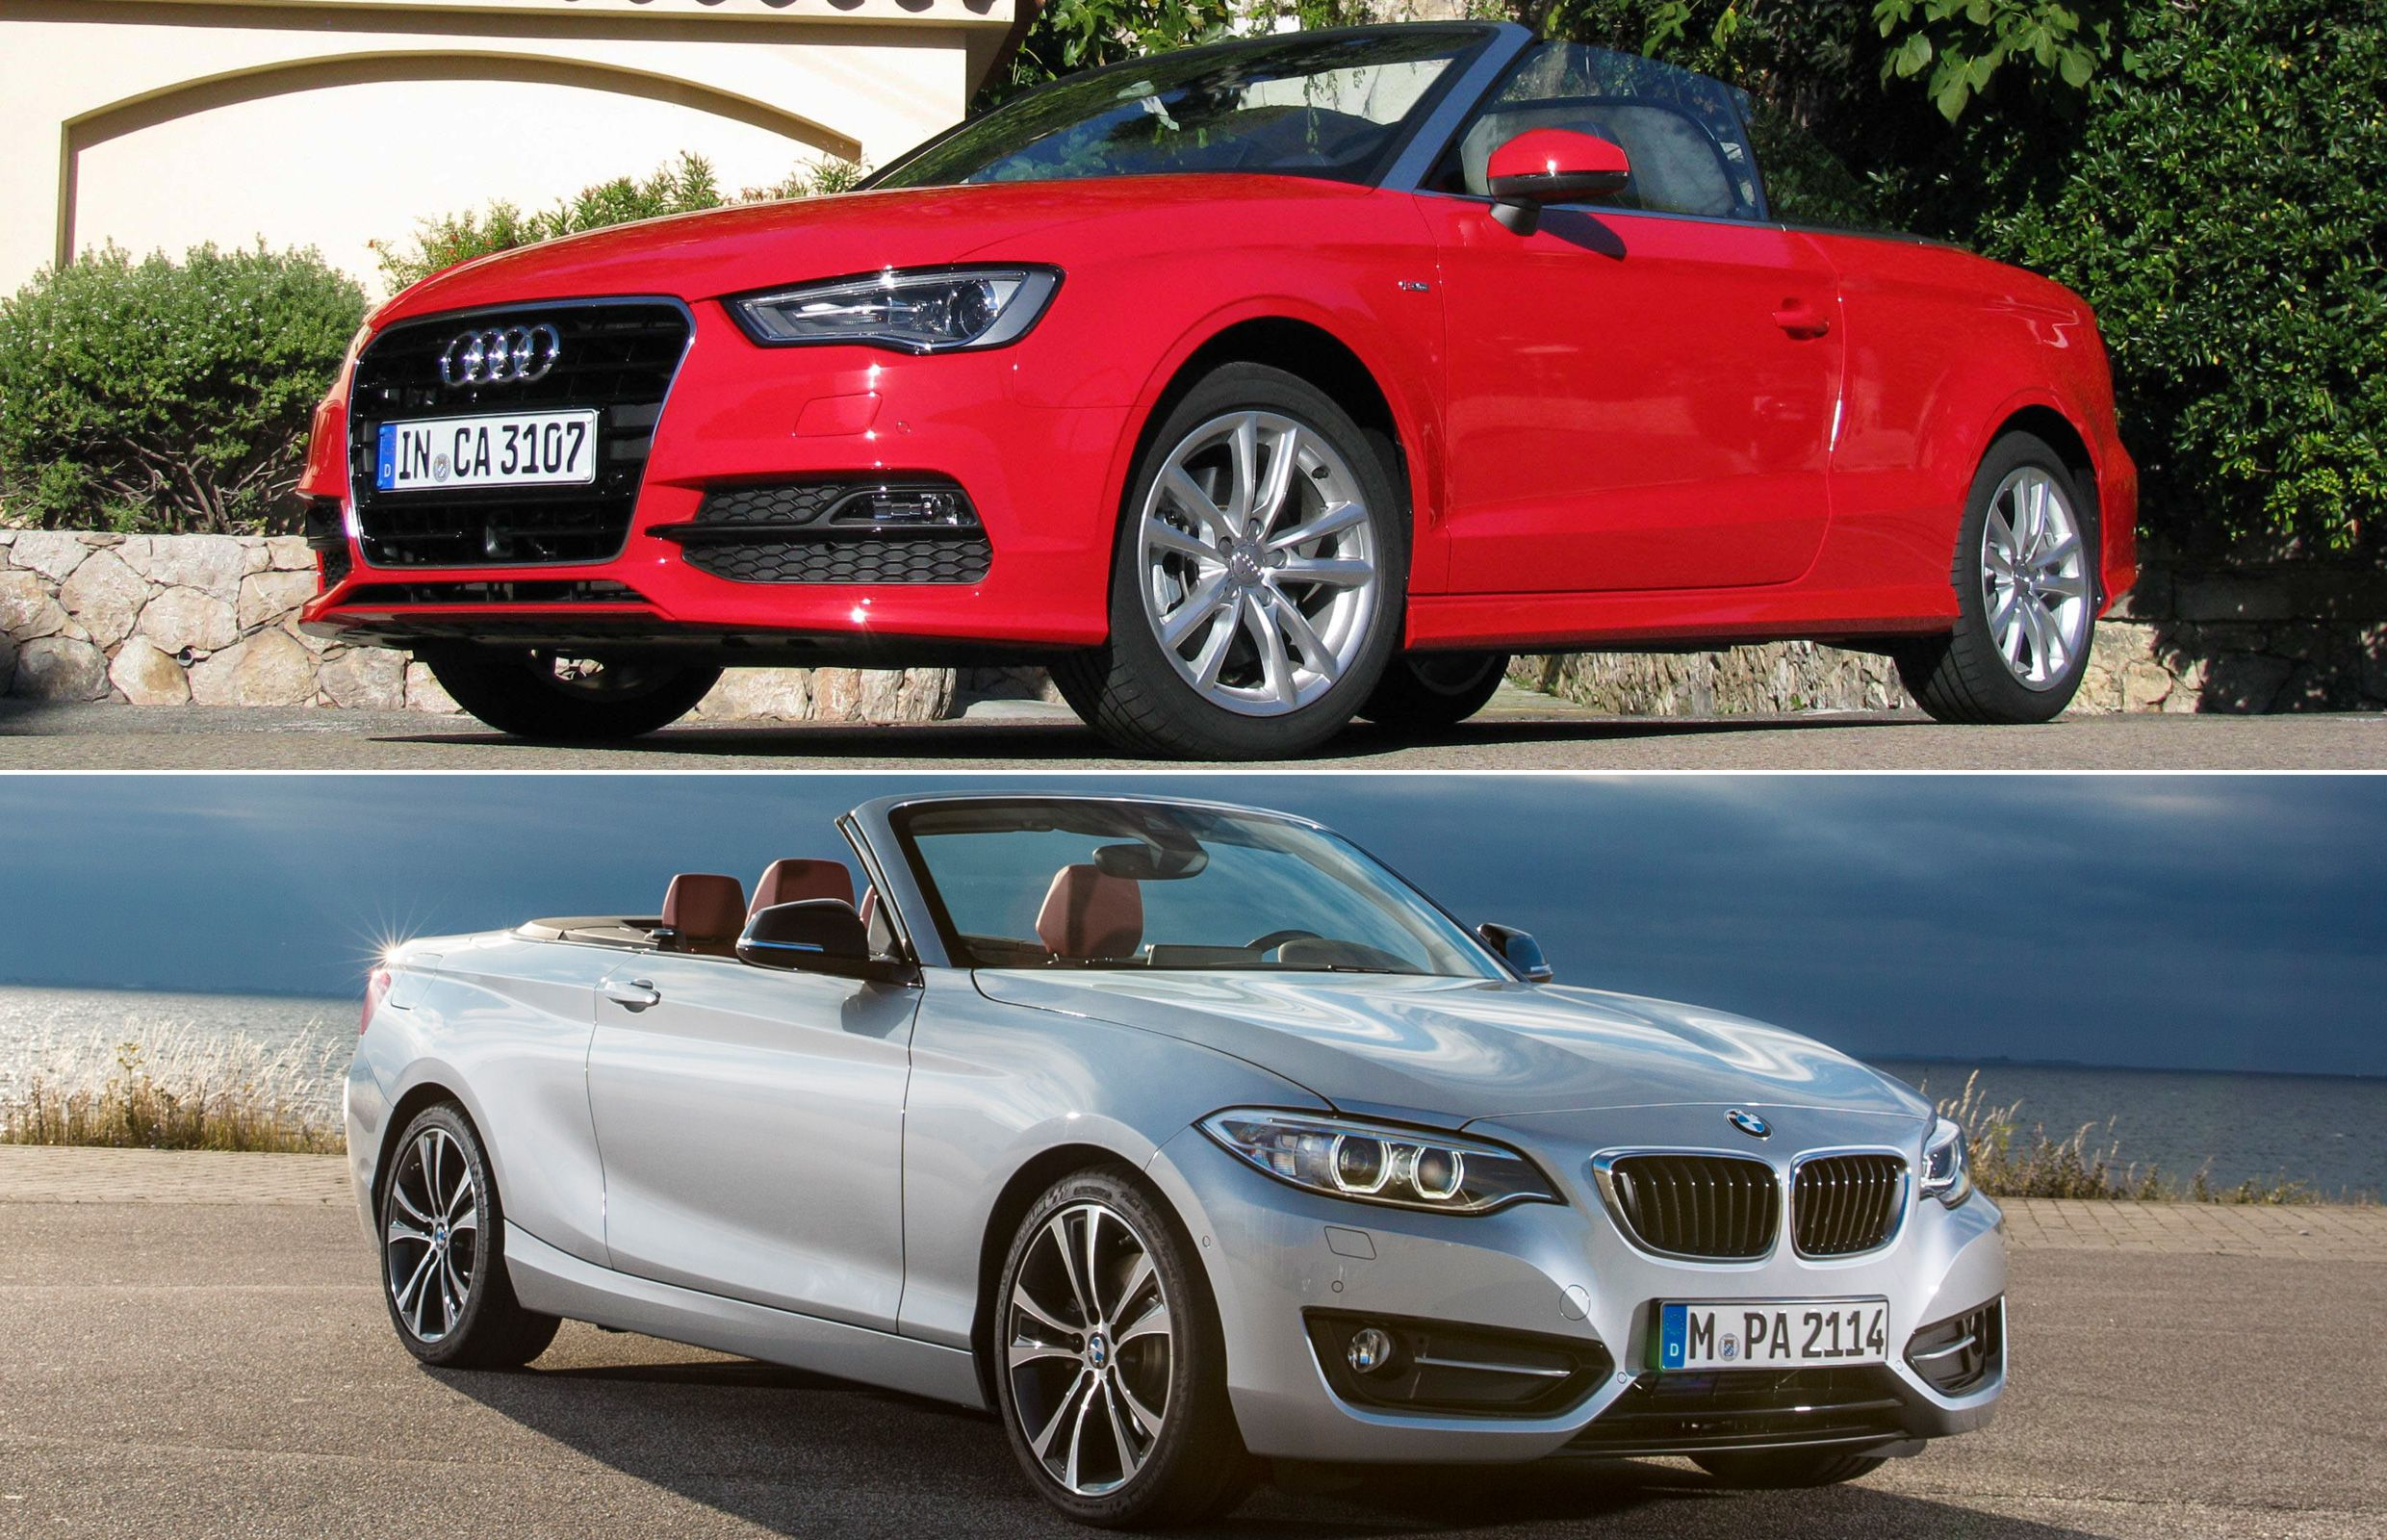 Audi A3 and BMW 2 Series